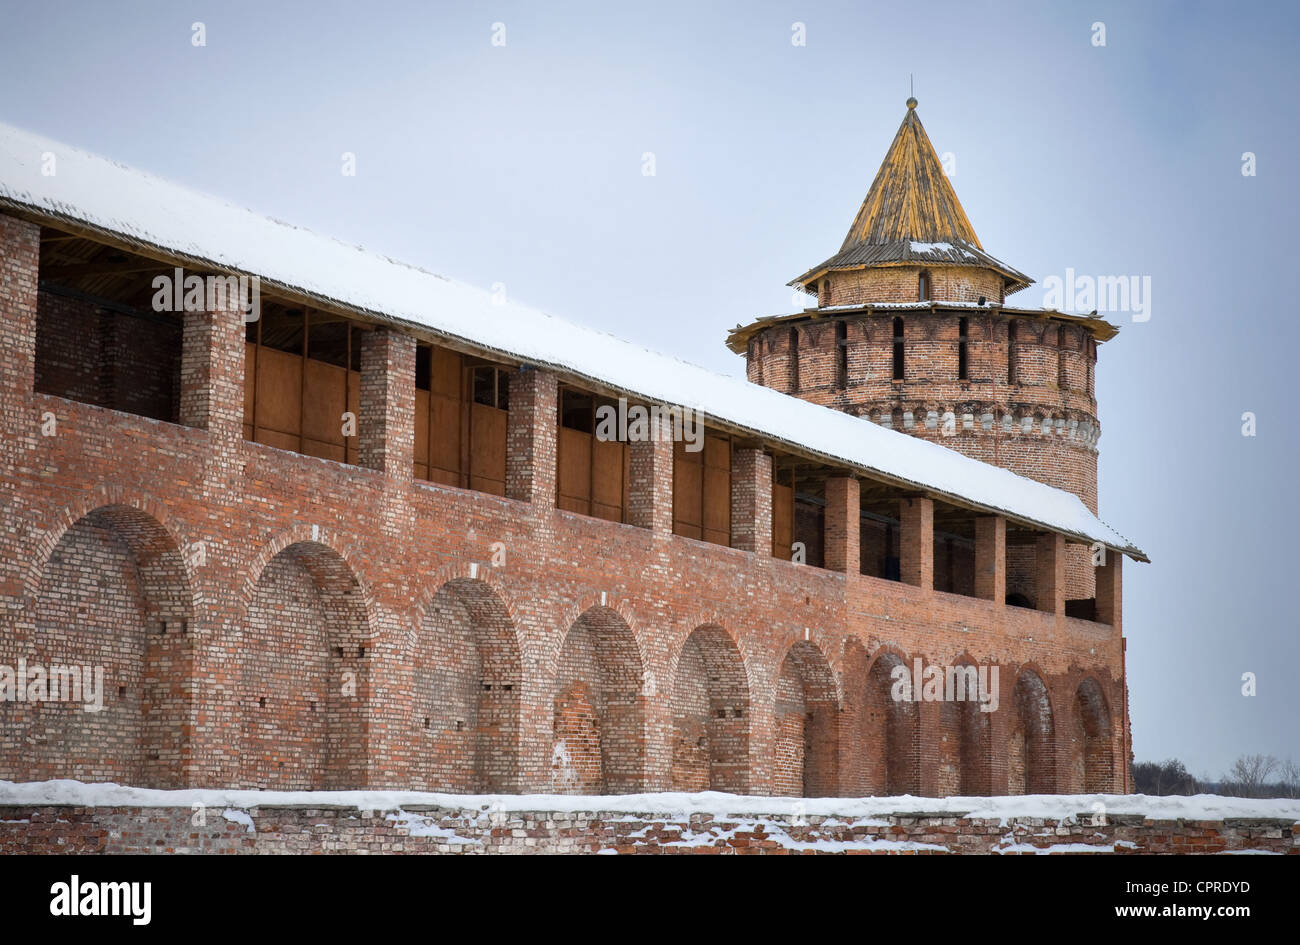 Old Kremlin. Fortress in town center of historical town Kolomna in Moscow Region, Russia. Stock Photo